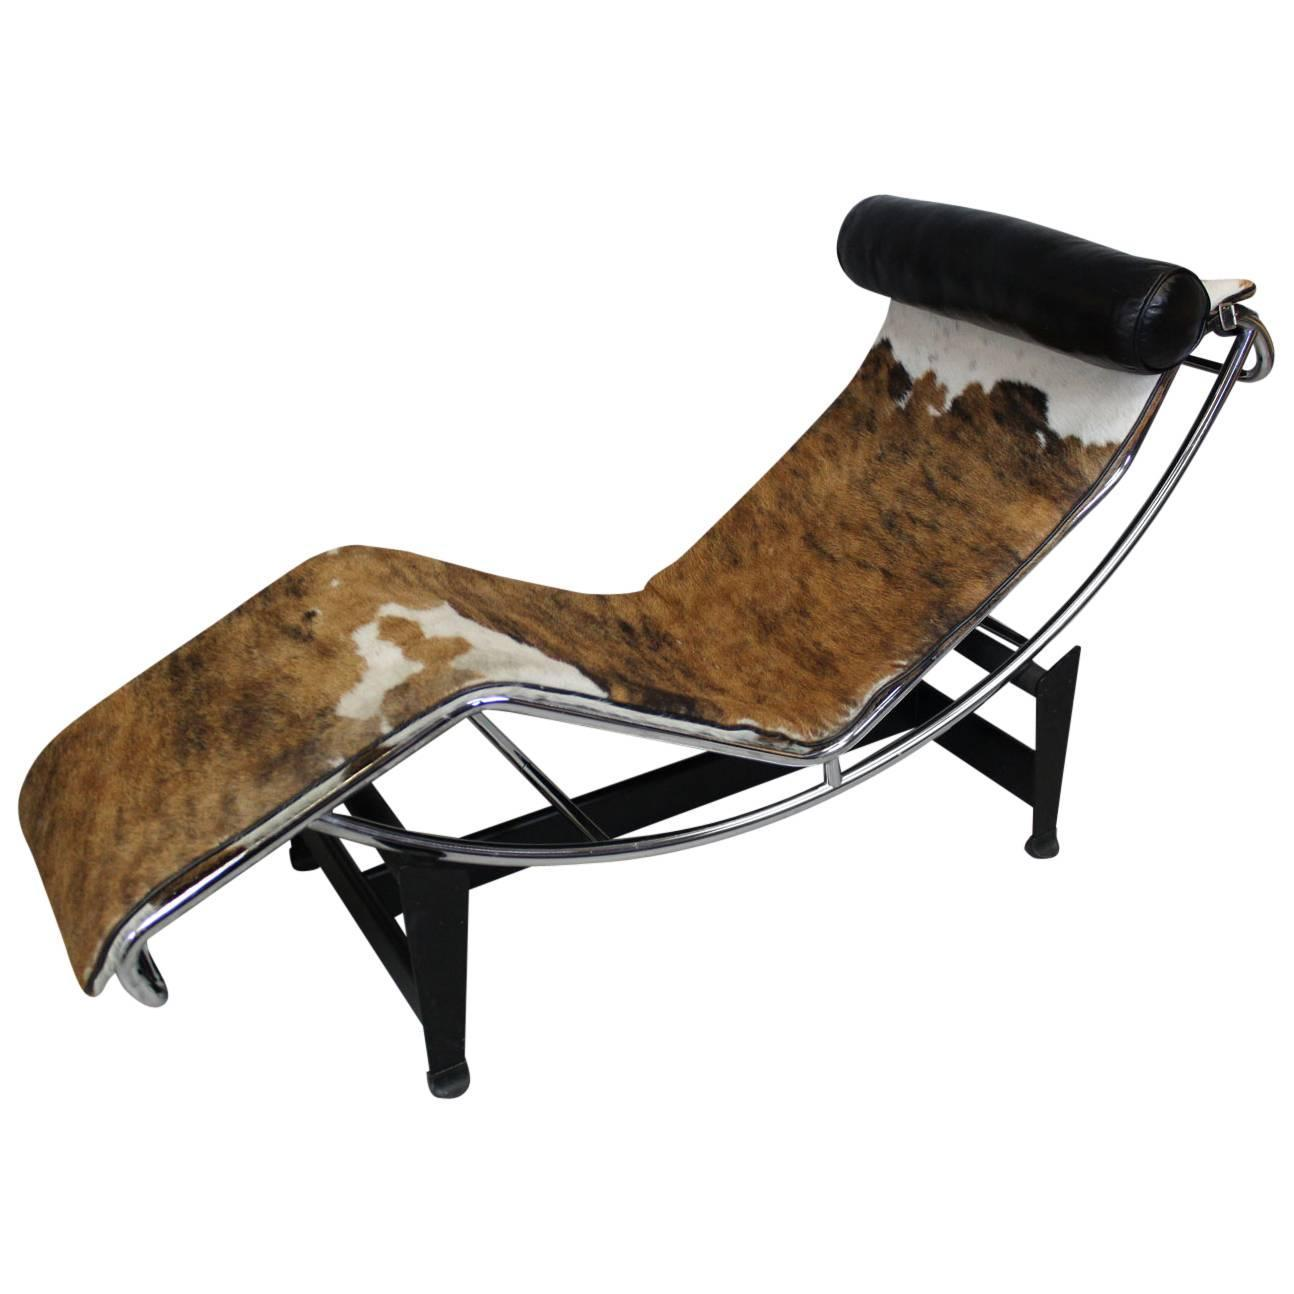 Le corbusier lc4 chaise lounge manufactured by cassina at for Chaise lounge cassina